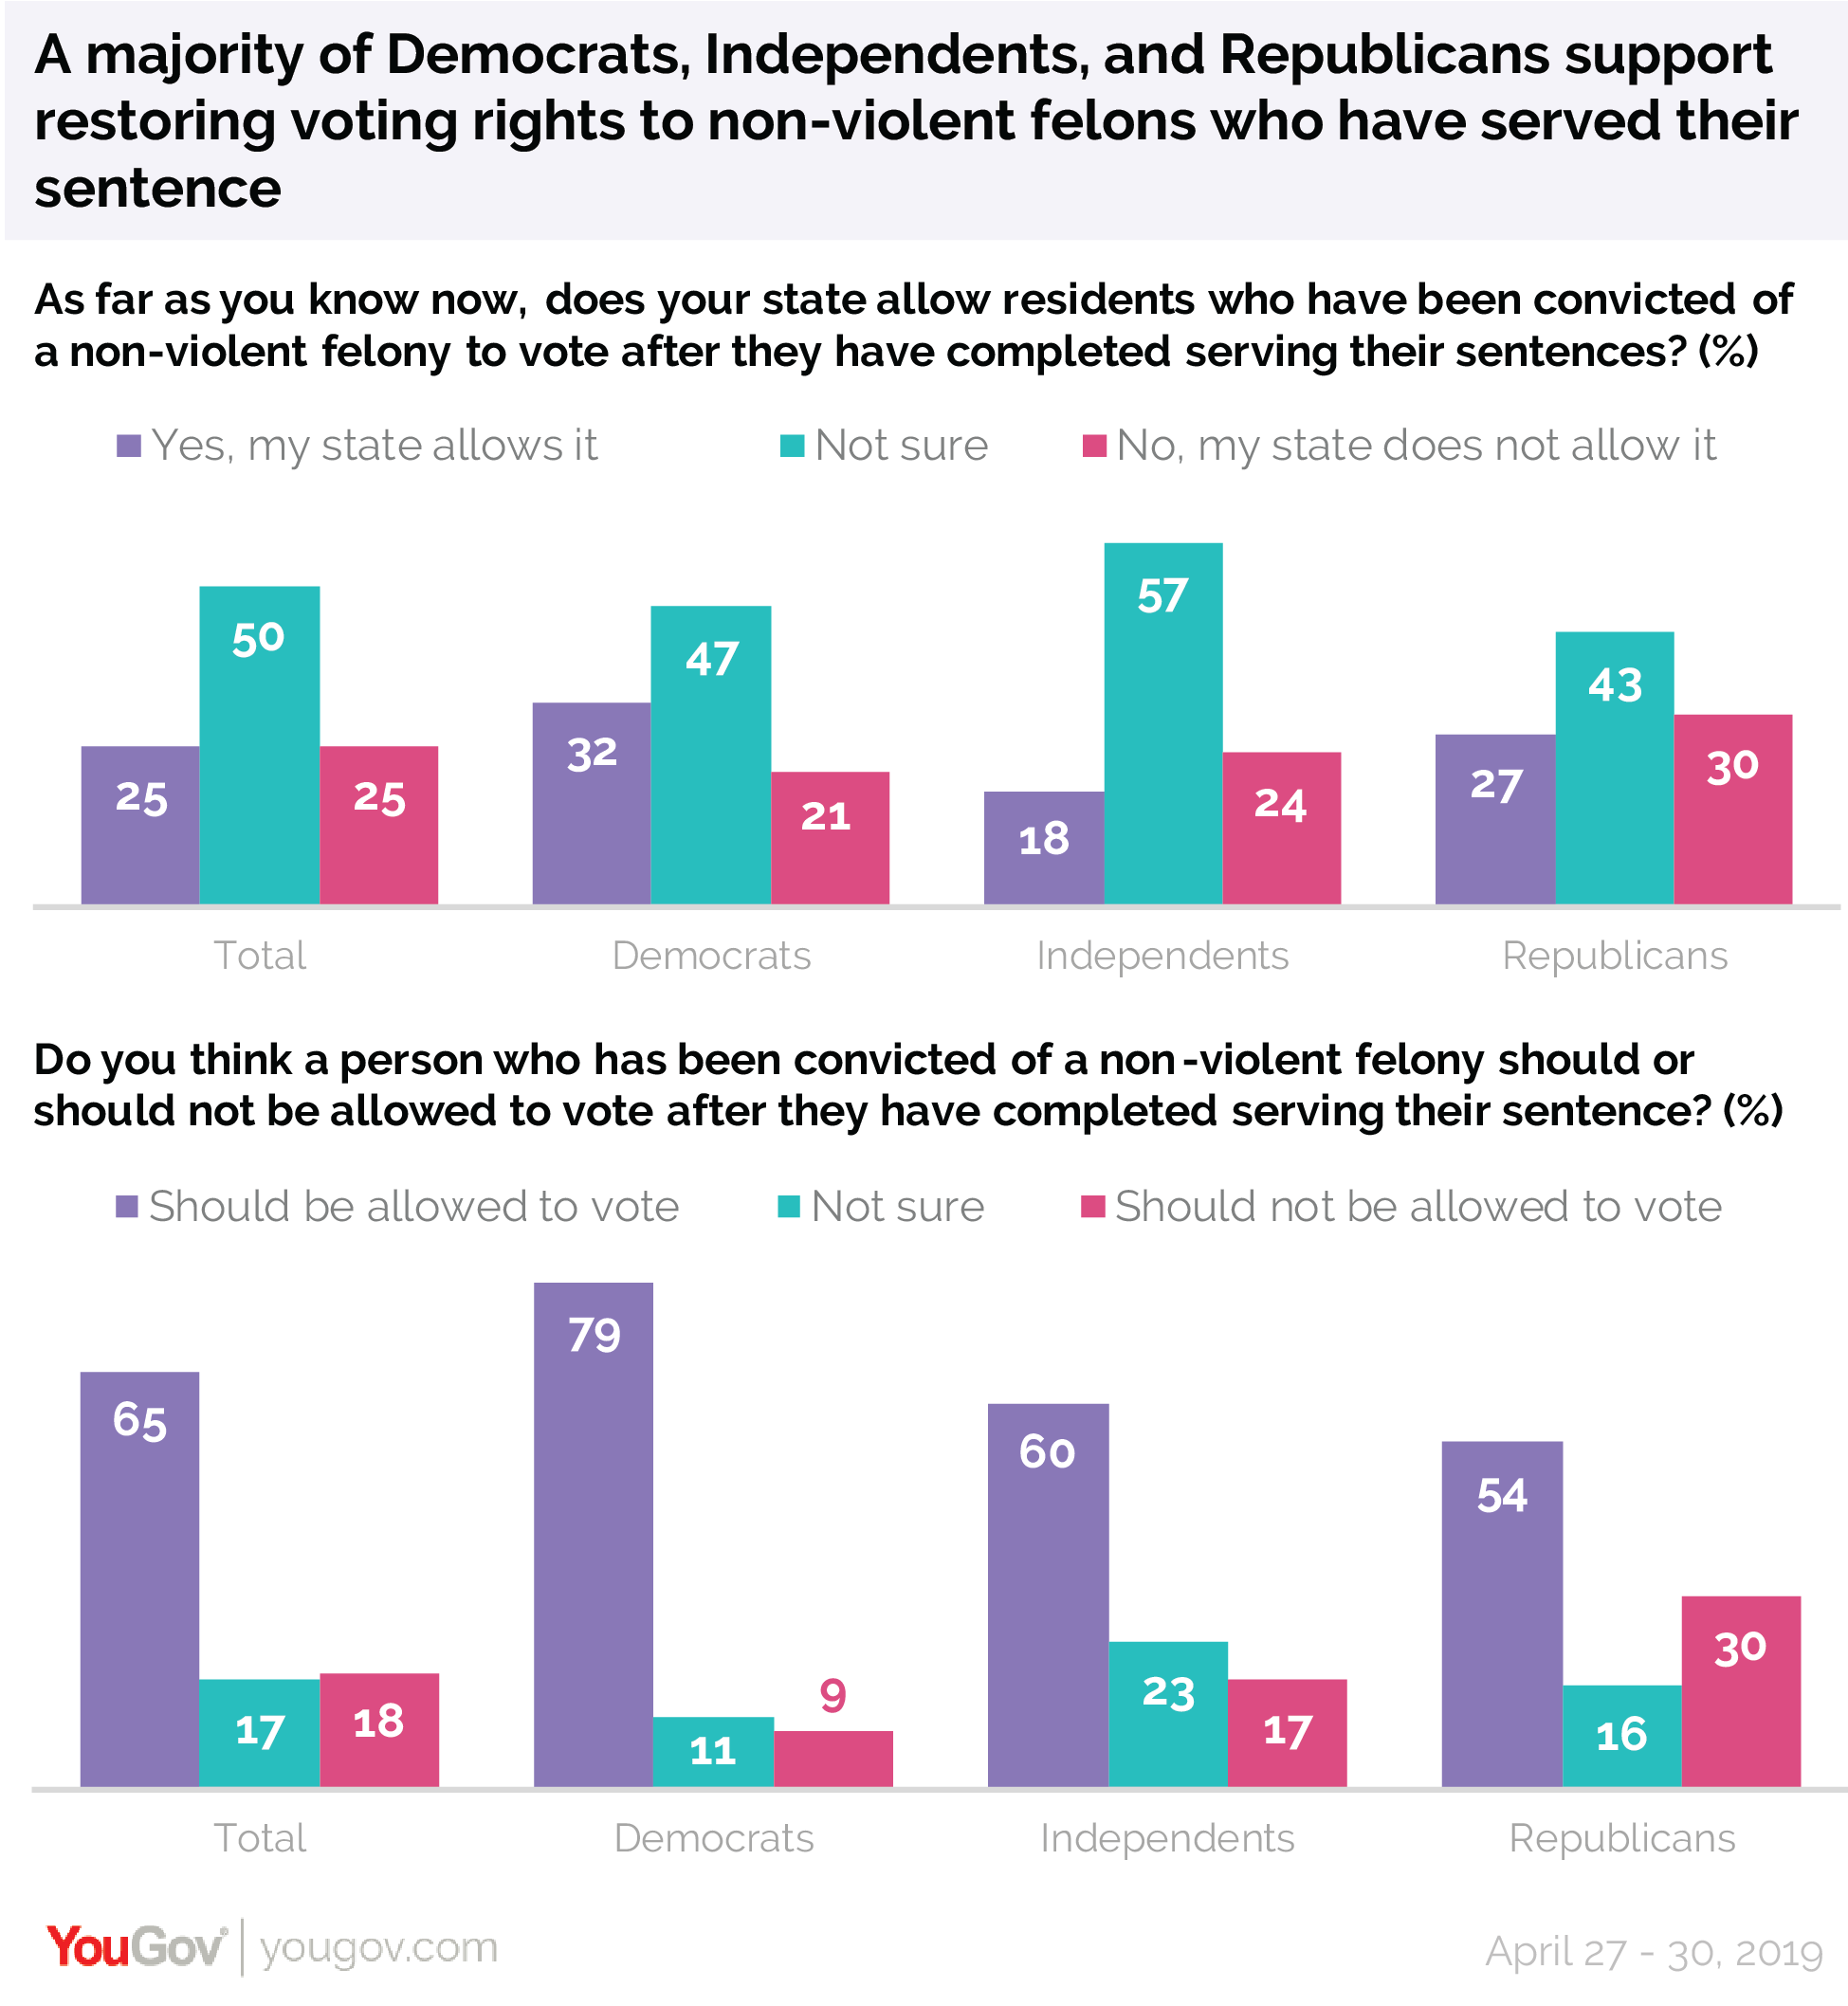 A majority of Democrats, Independents, and Republicans support restoring voting rights to non-violent felons who have served their sentence